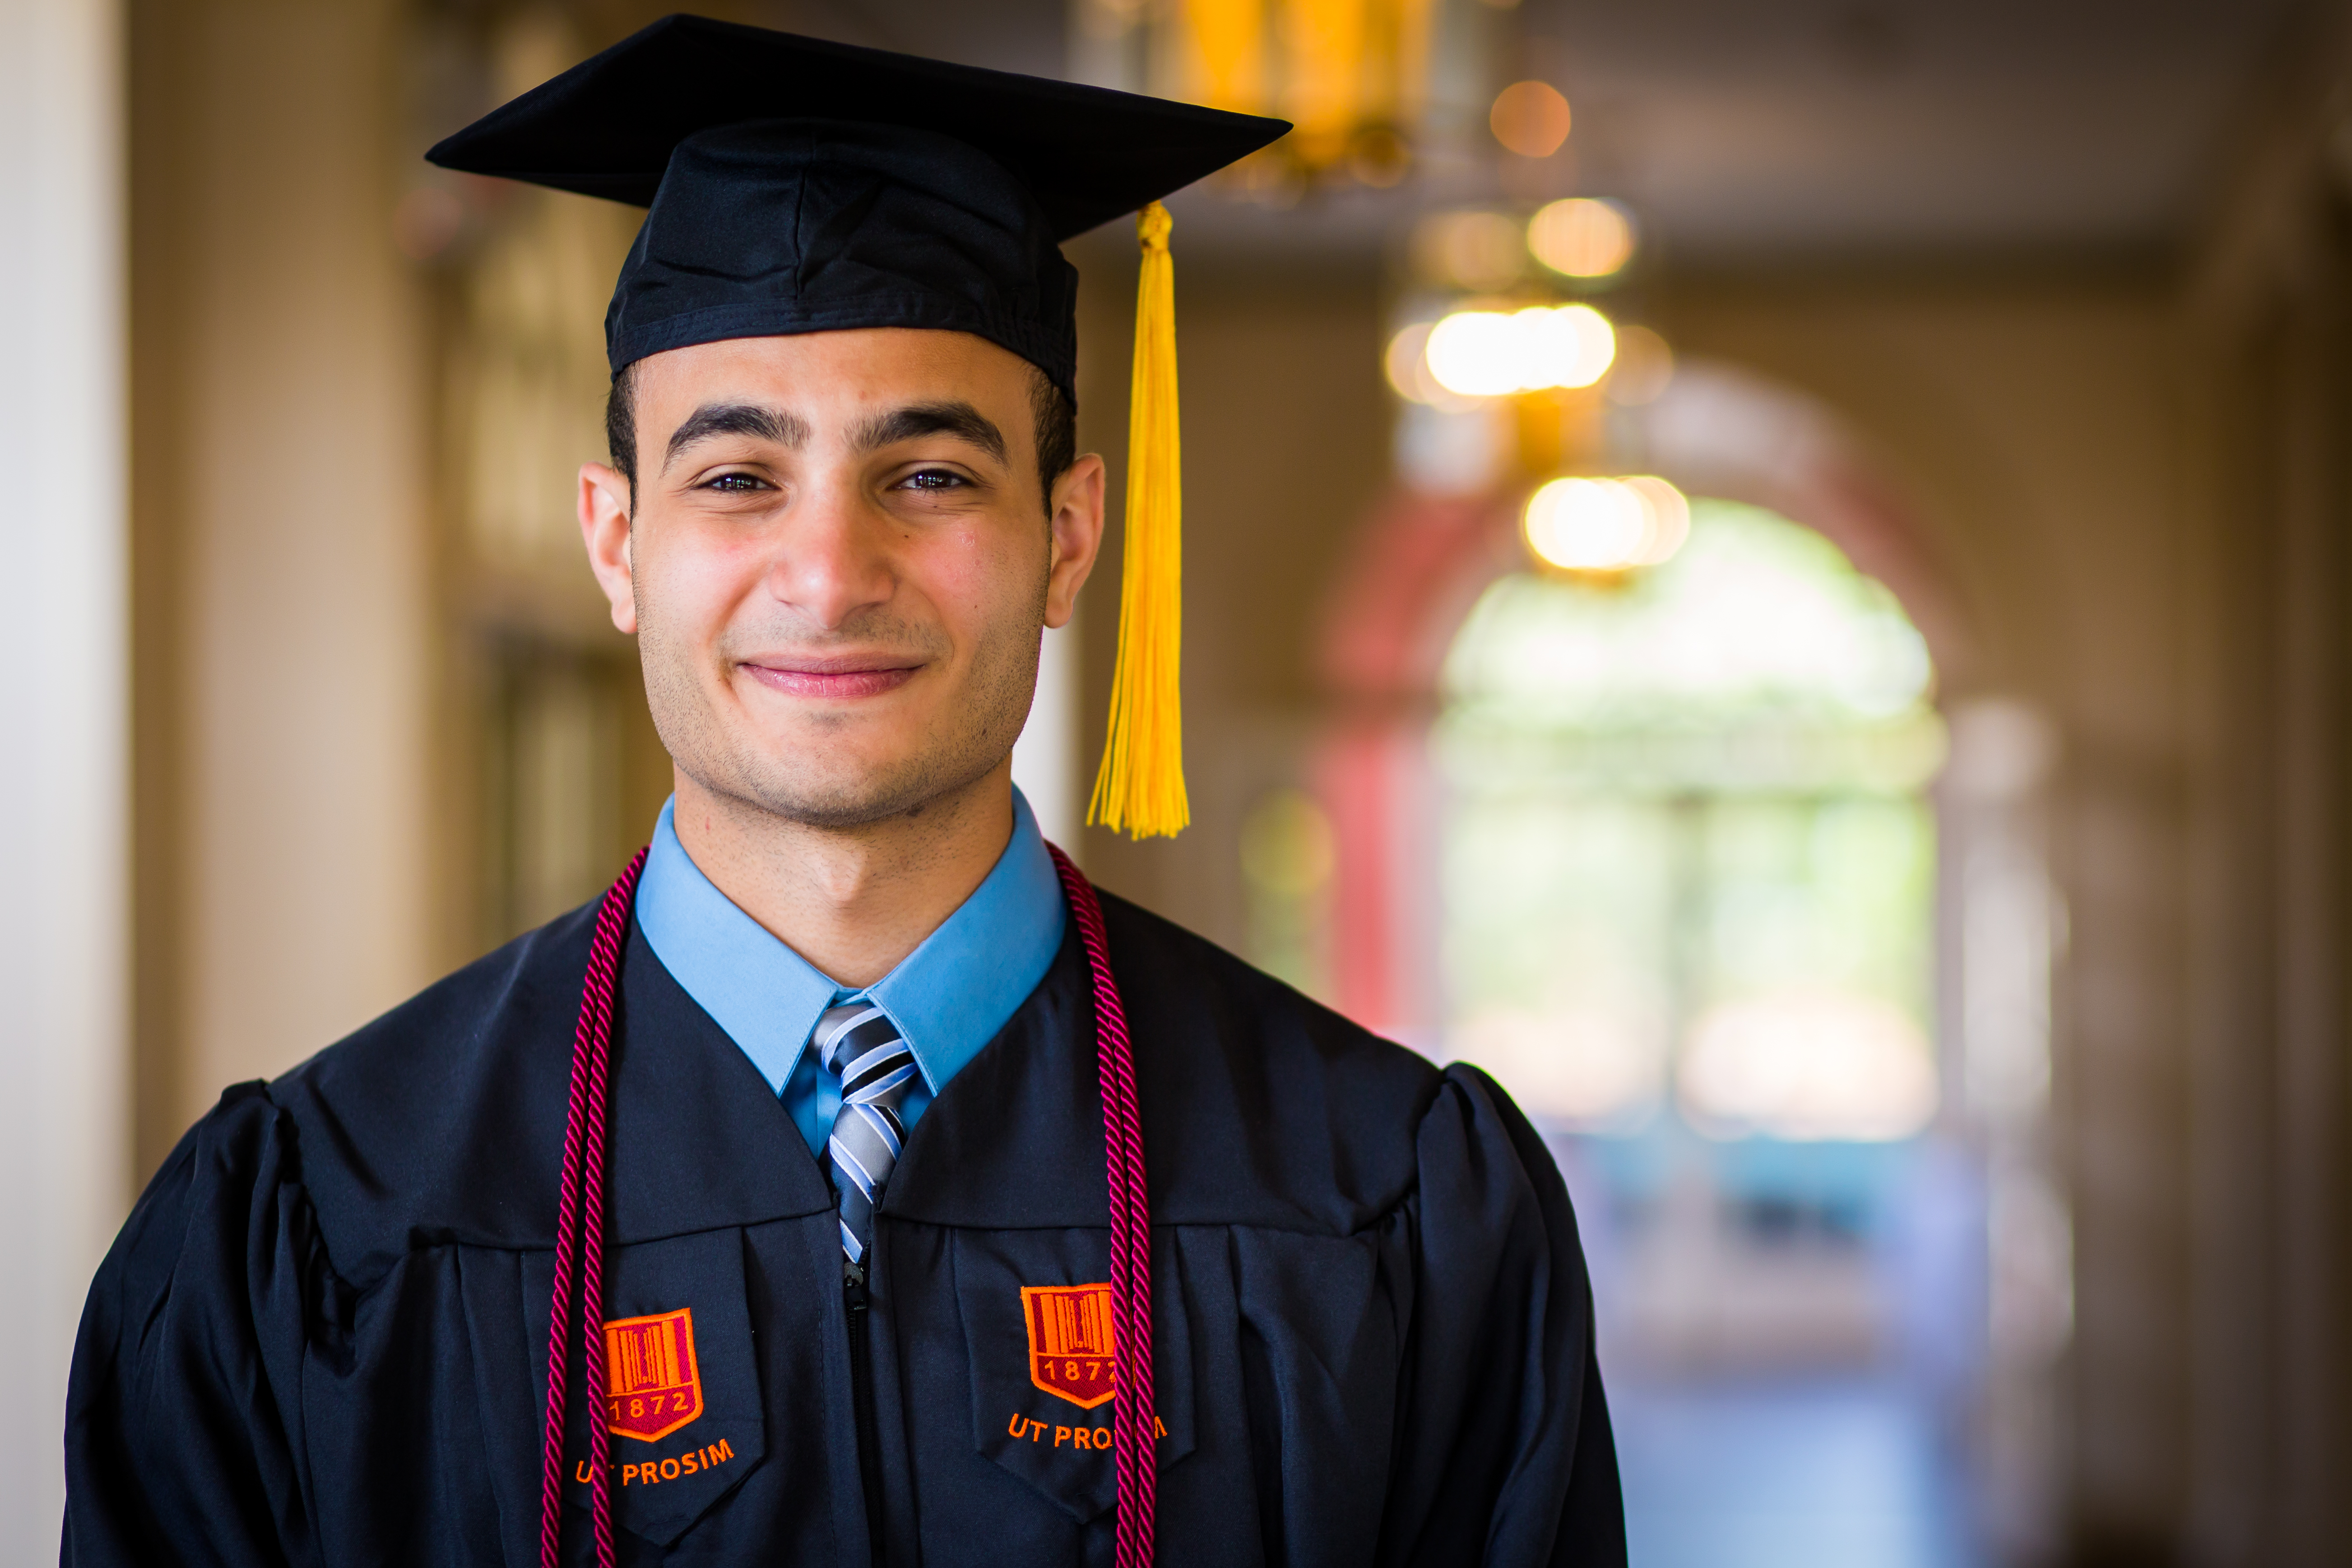 Michael Azir was one of 30 students recently honored at the Virginia Tech Summer Academy recognition ceremony.